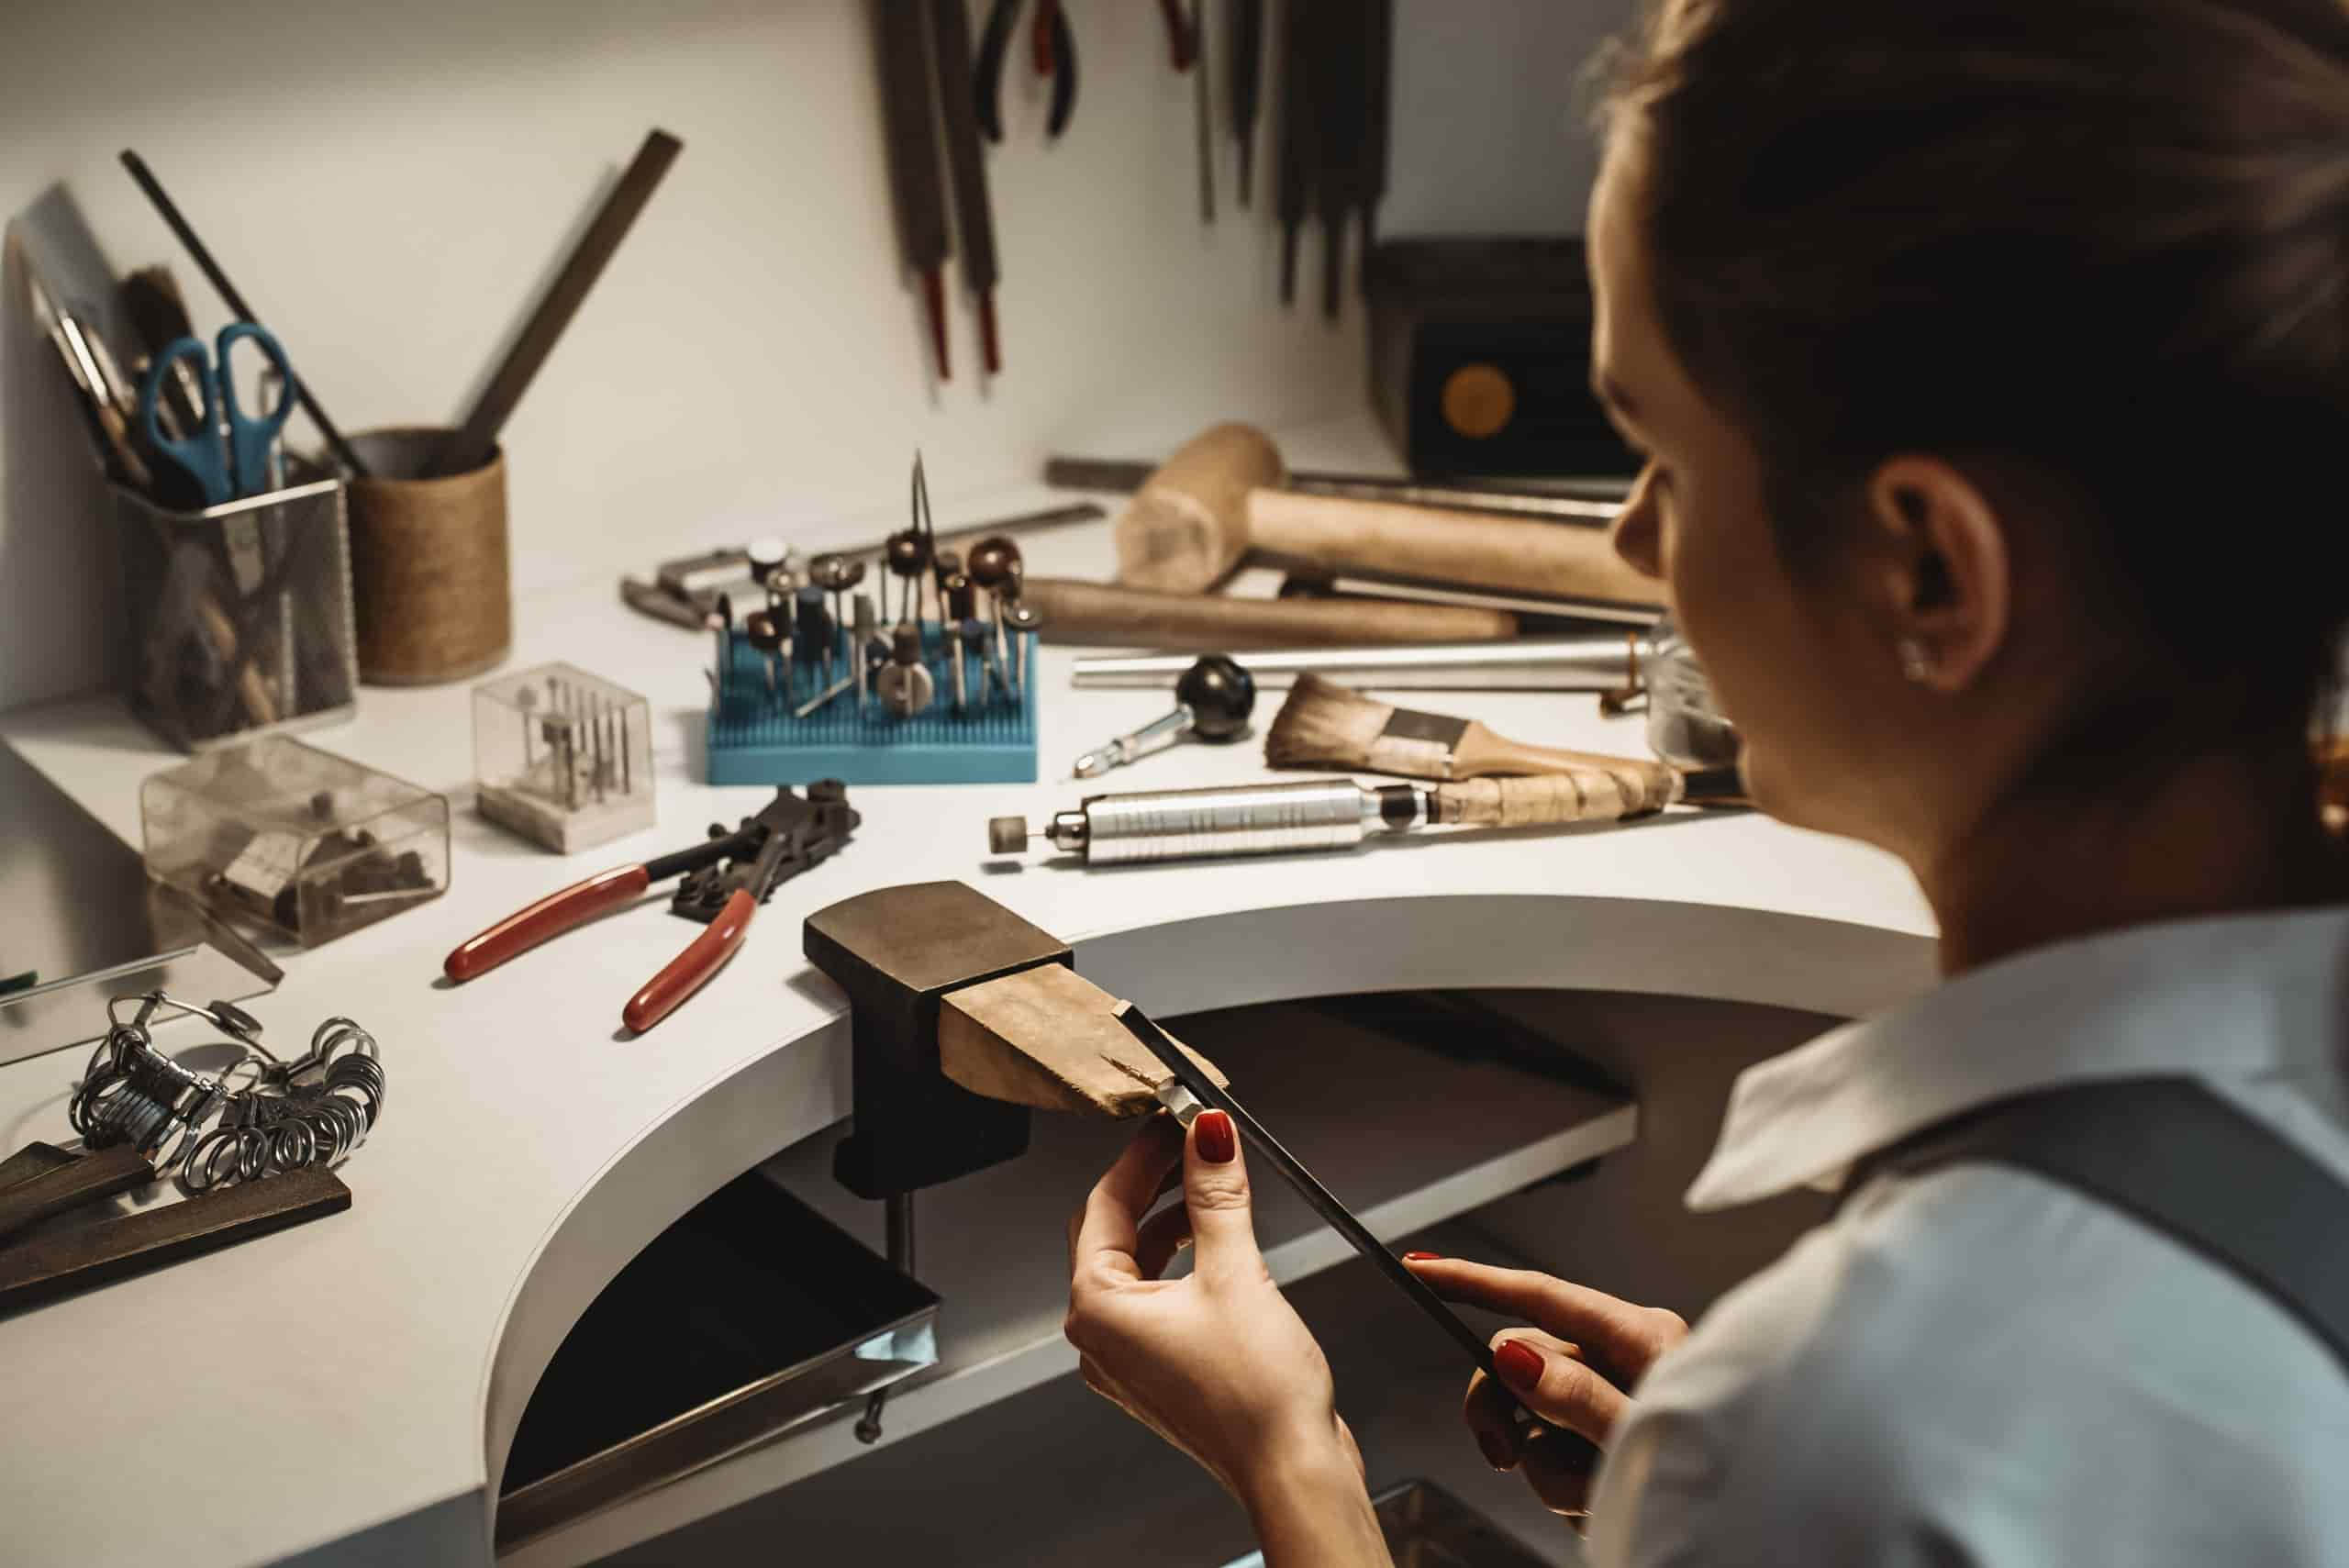 jeweler filing ring at work station surrounded by tools